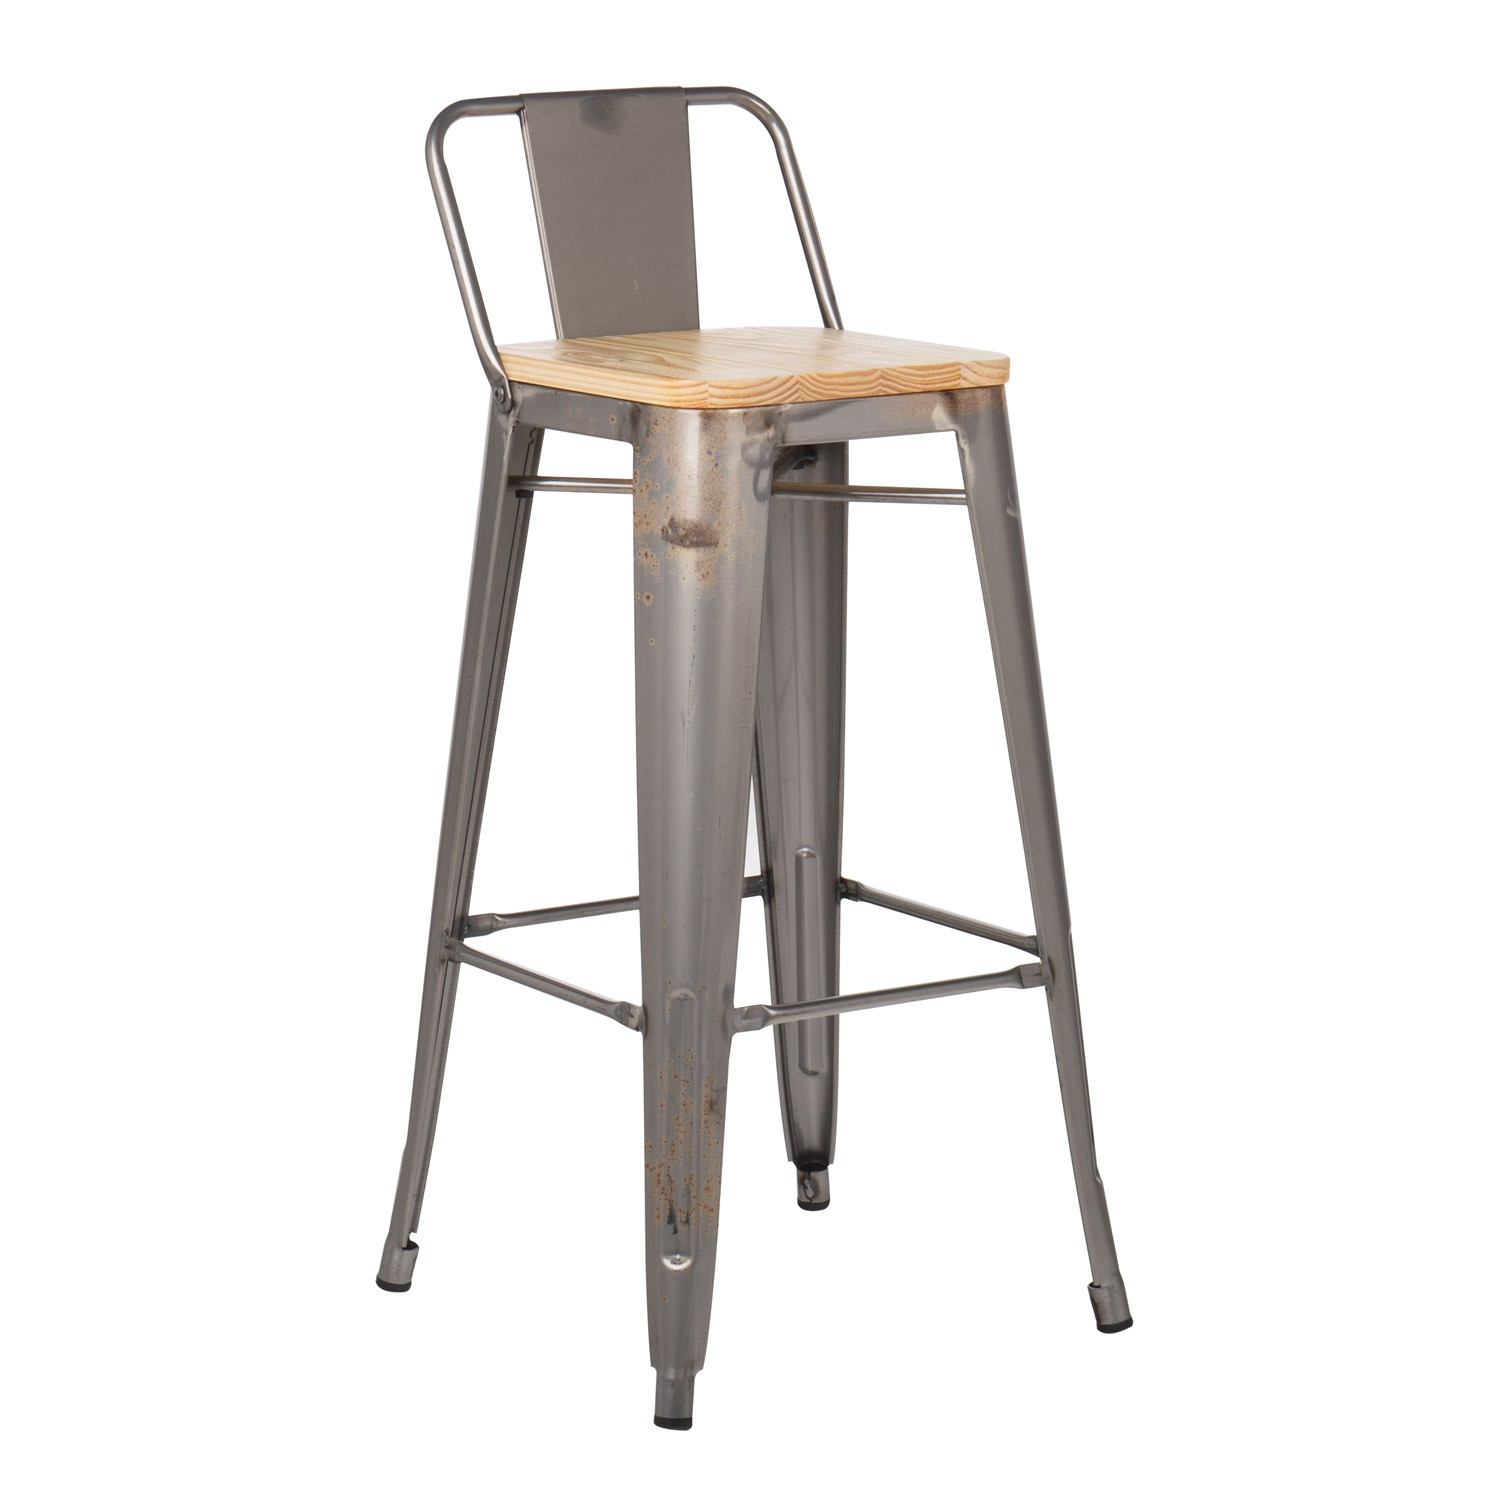 Brushed Wood LIX Bar Stool with Backrest, gallery image 1